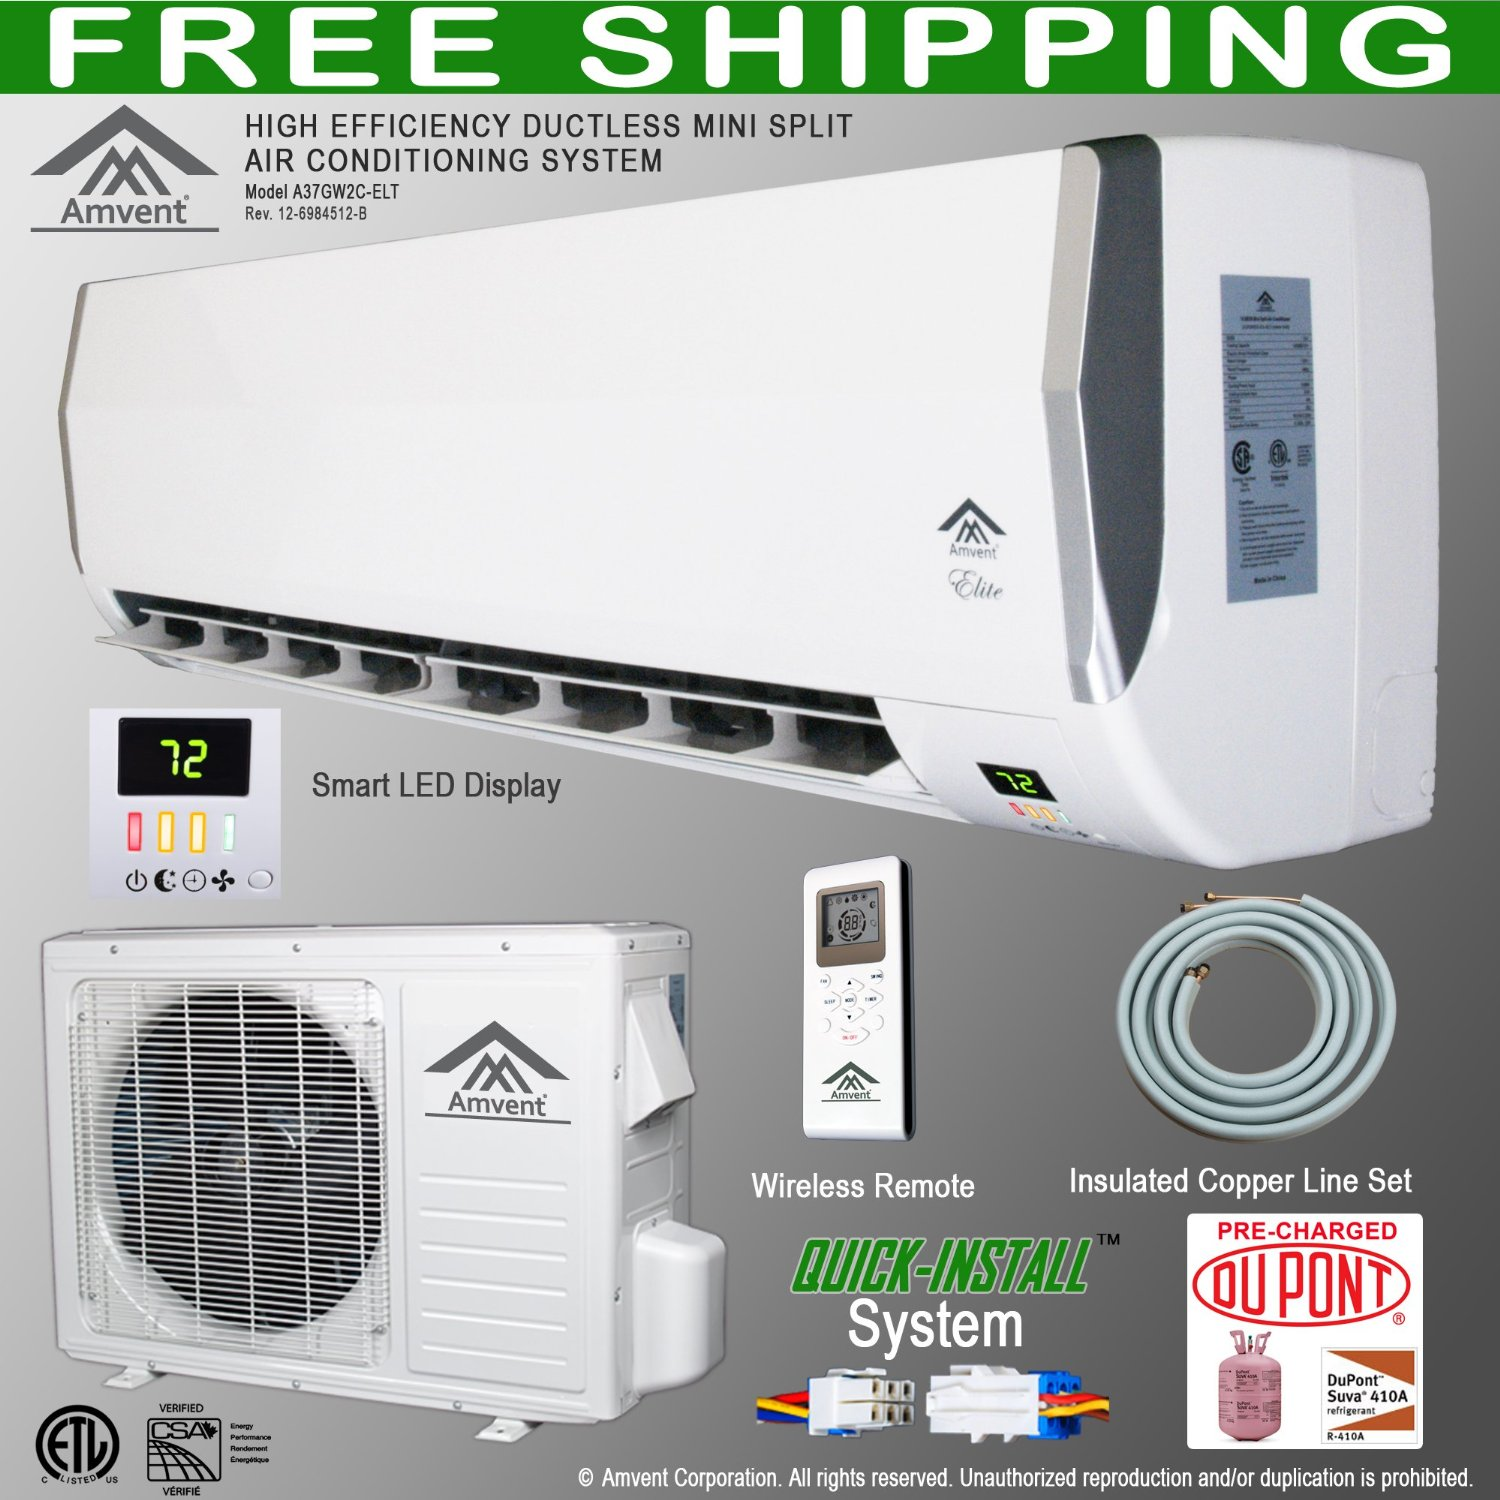 Ton Ductless Mini Split Air Conditioner And 2016 Car Release Date #1A8612